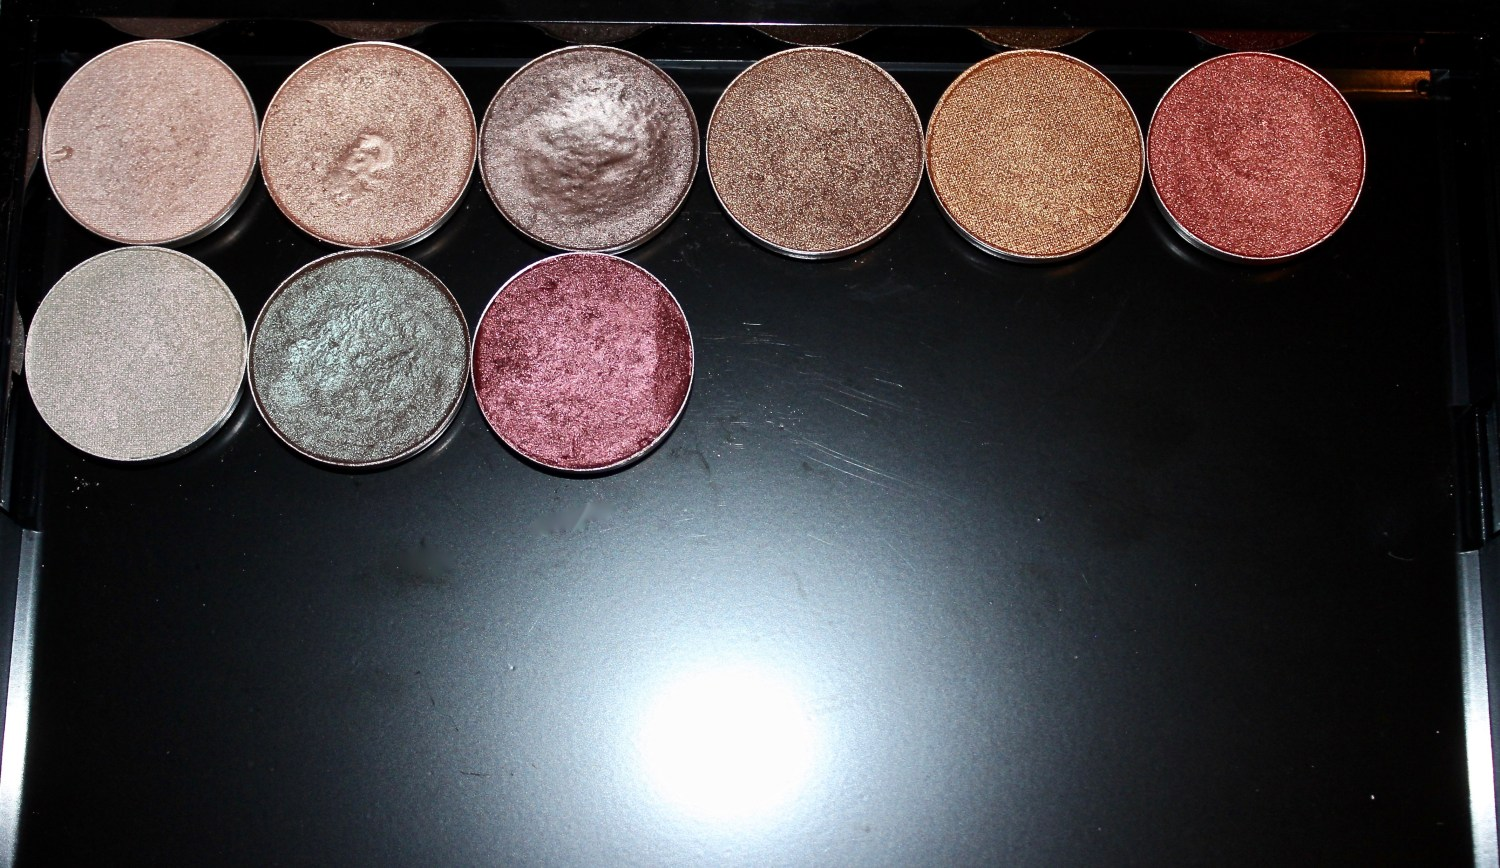 mac cosmetics eyeshadow pans